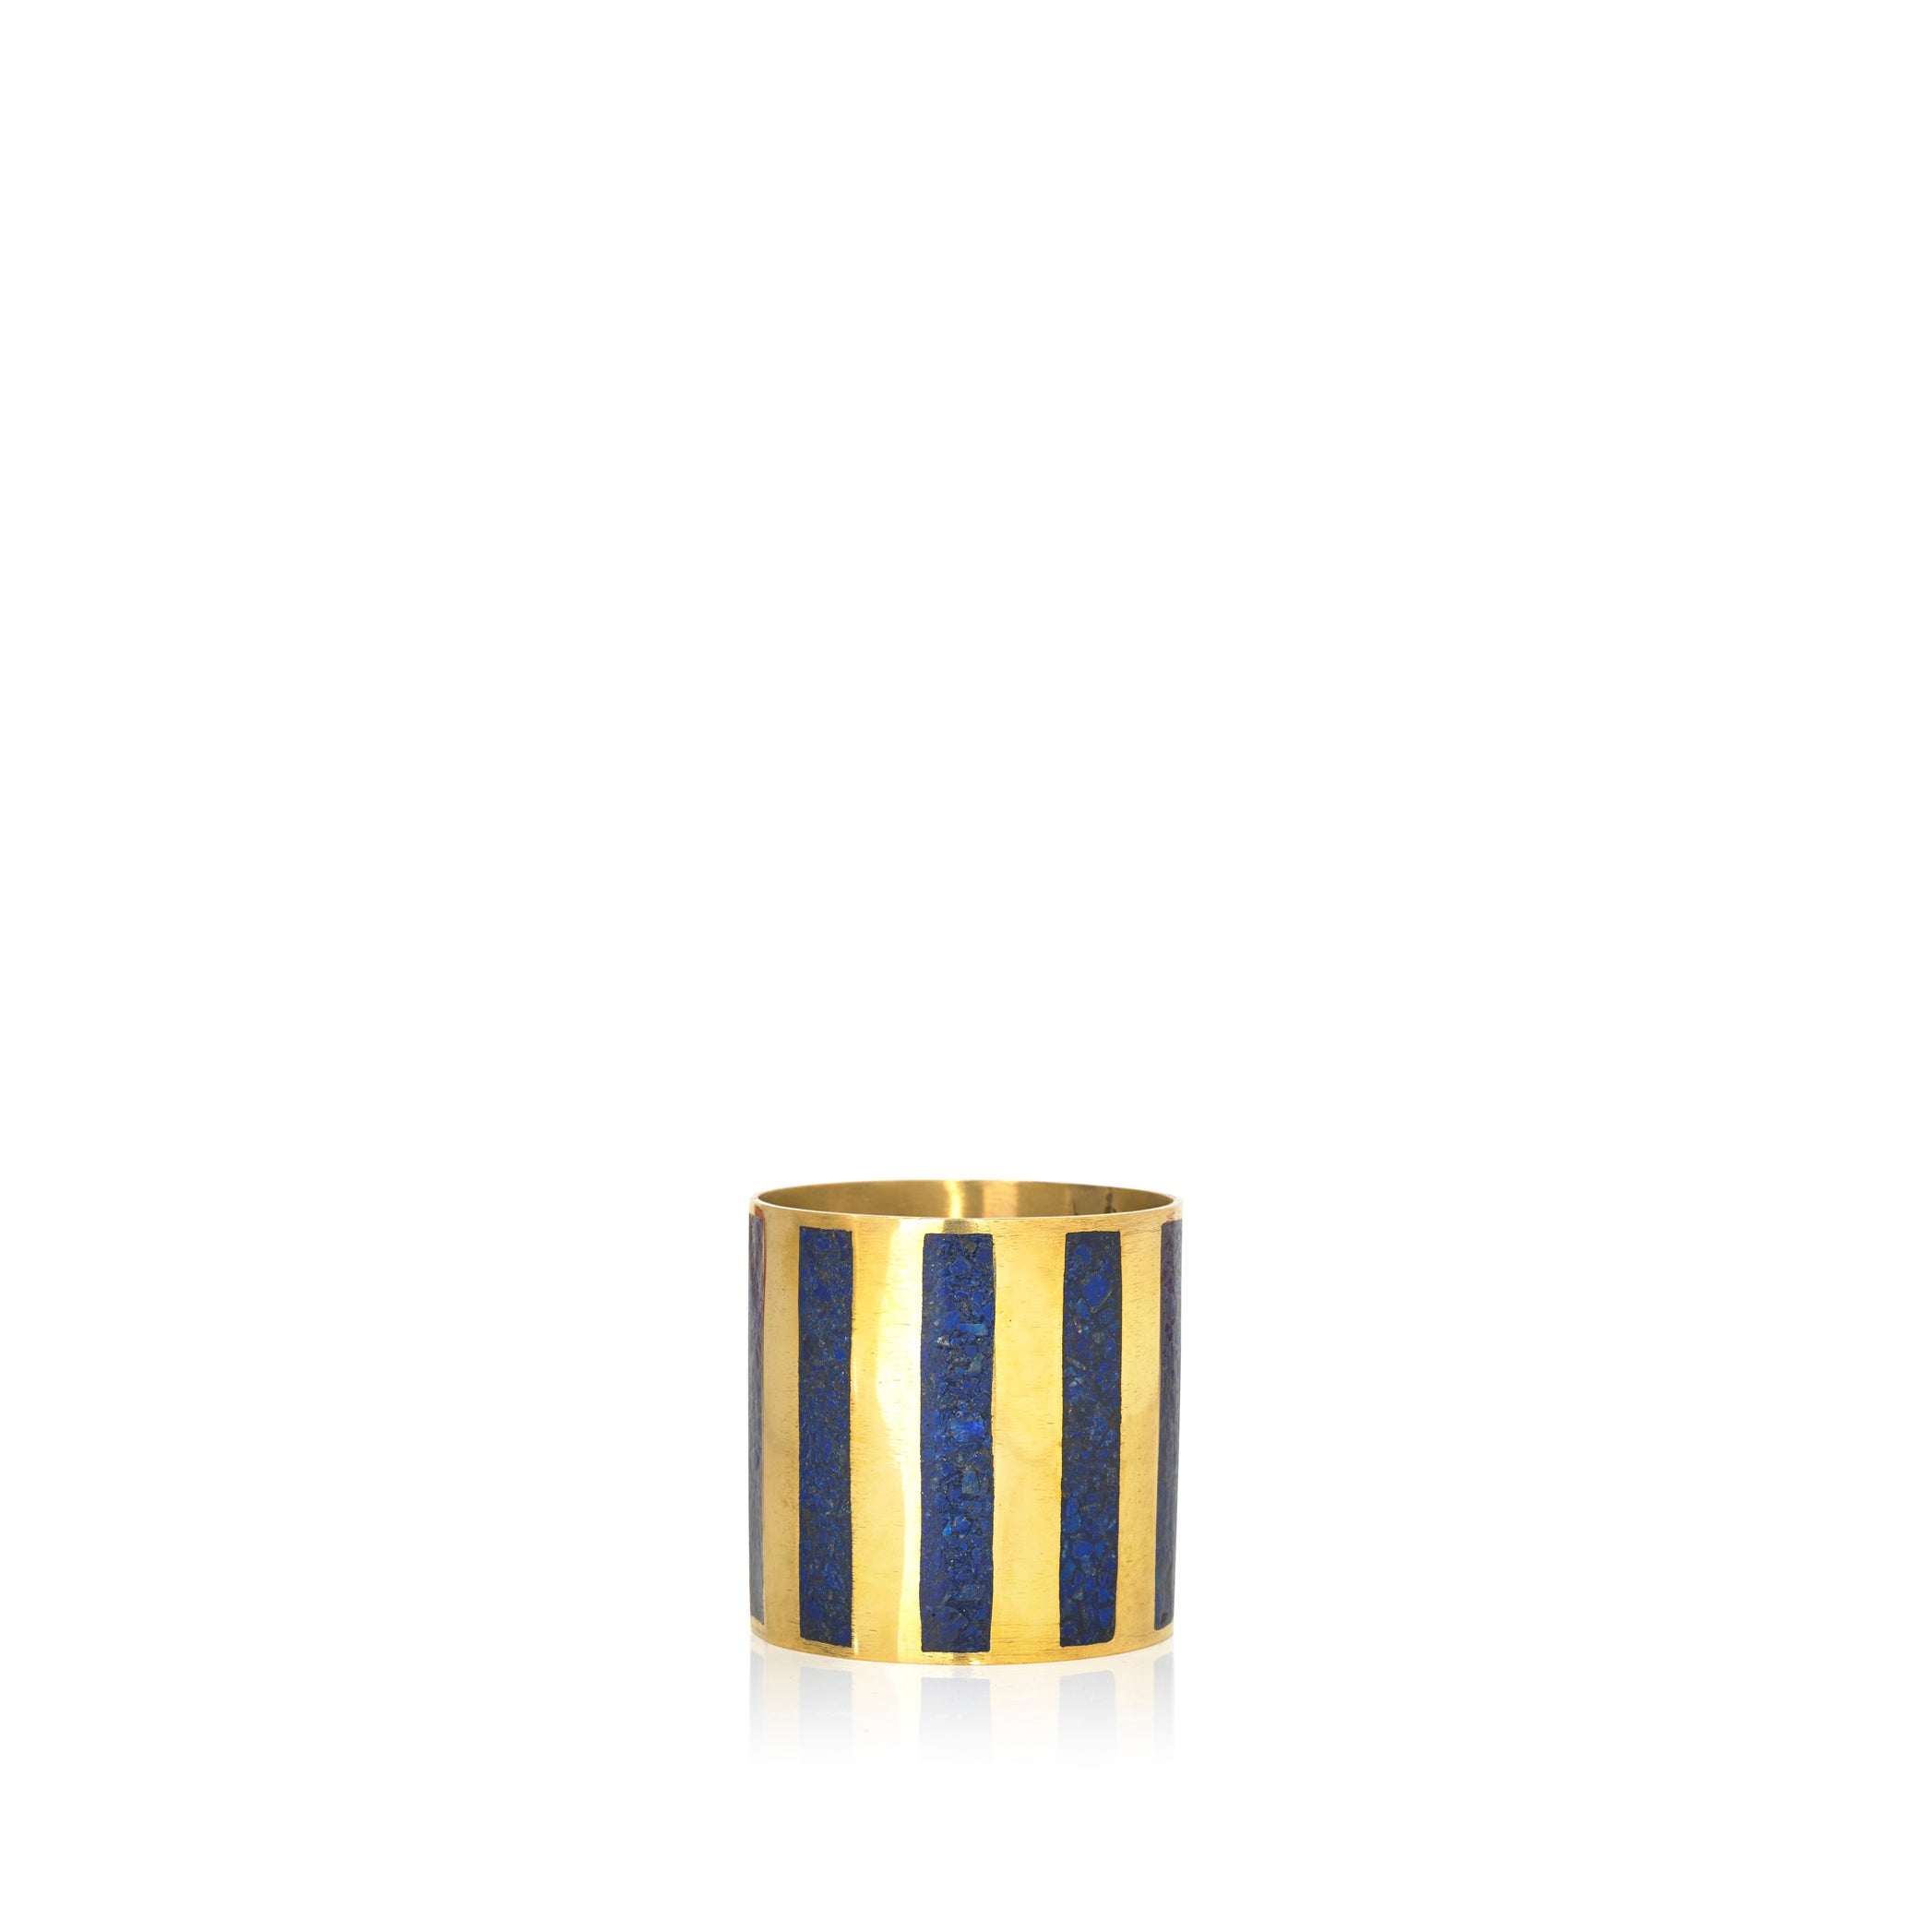 S&B x Pippa Small Lapis Inlaid Napkin Ring, Vertical Multiple Stripe